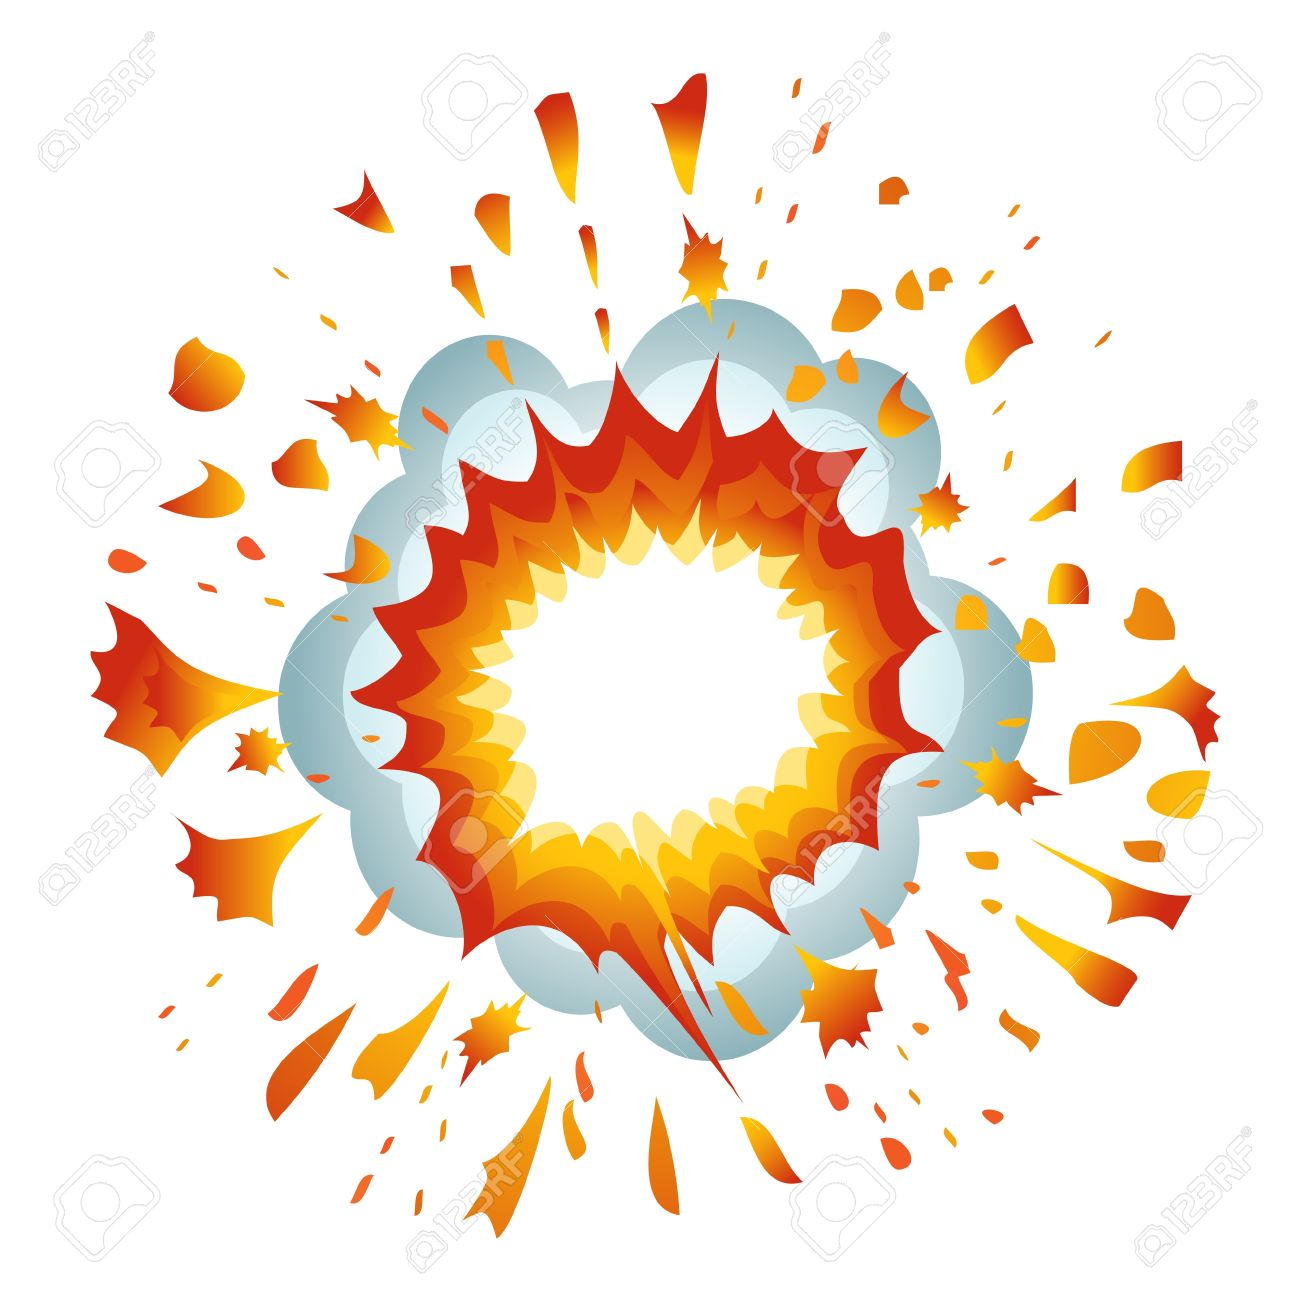 explosion vector illustration royalty free cliparts vectors and stock illustration image 11882370 explosion vector illustration